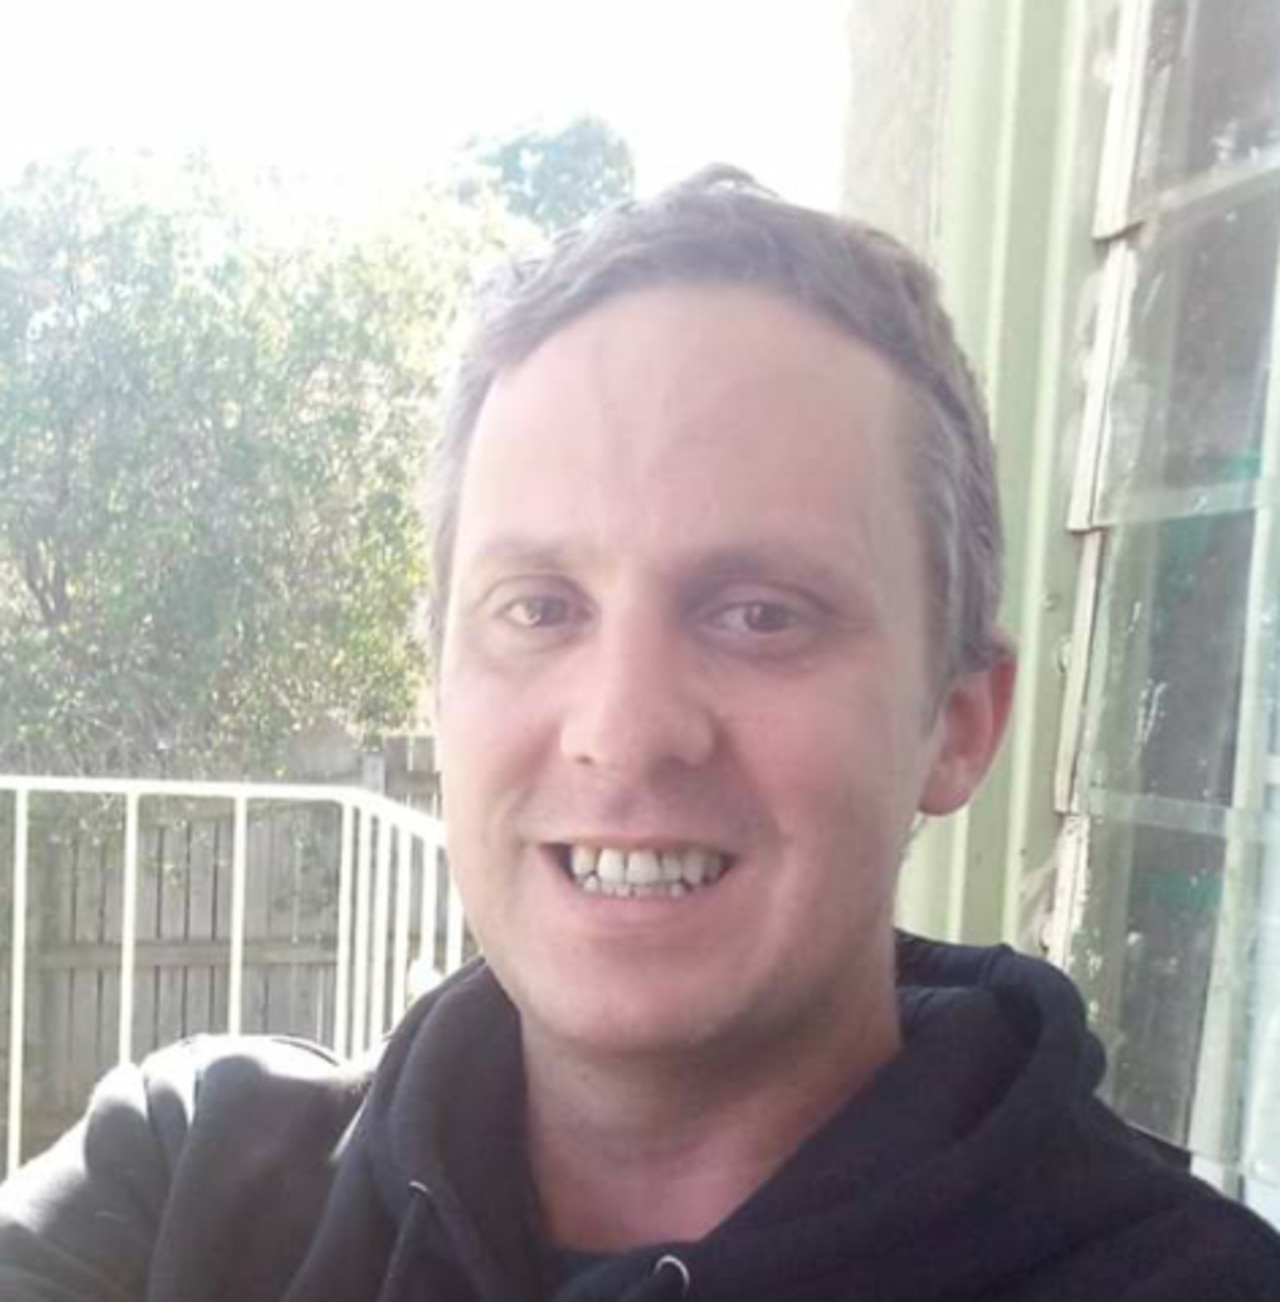 Thirty-year-old Mathew Schloss was last seen by a family member at a Nutmeg St address in Inala on Thursday, May 21,